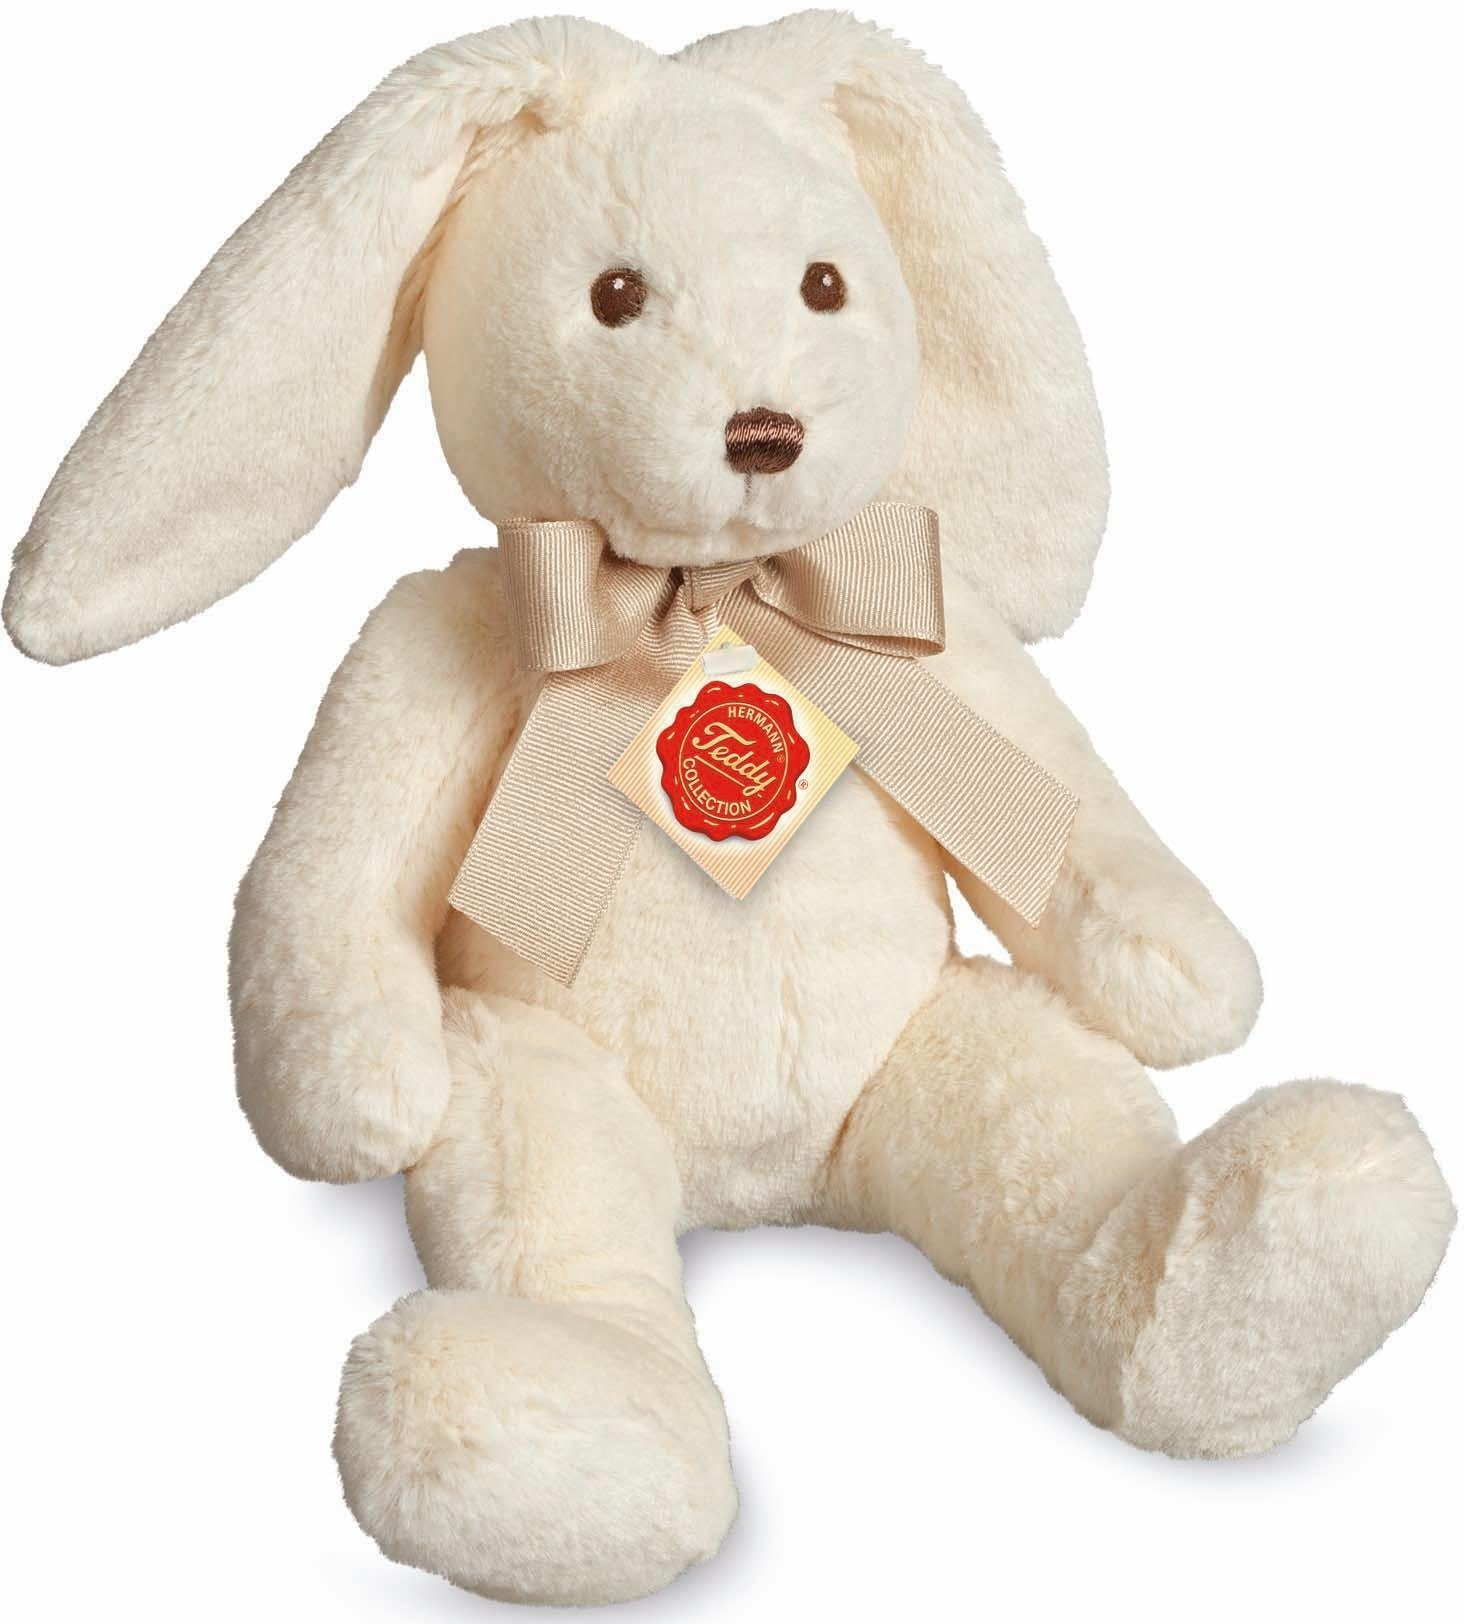 Teddy Hermann® COLLECTION Plüschtier, »Hase creme, 32 cm«